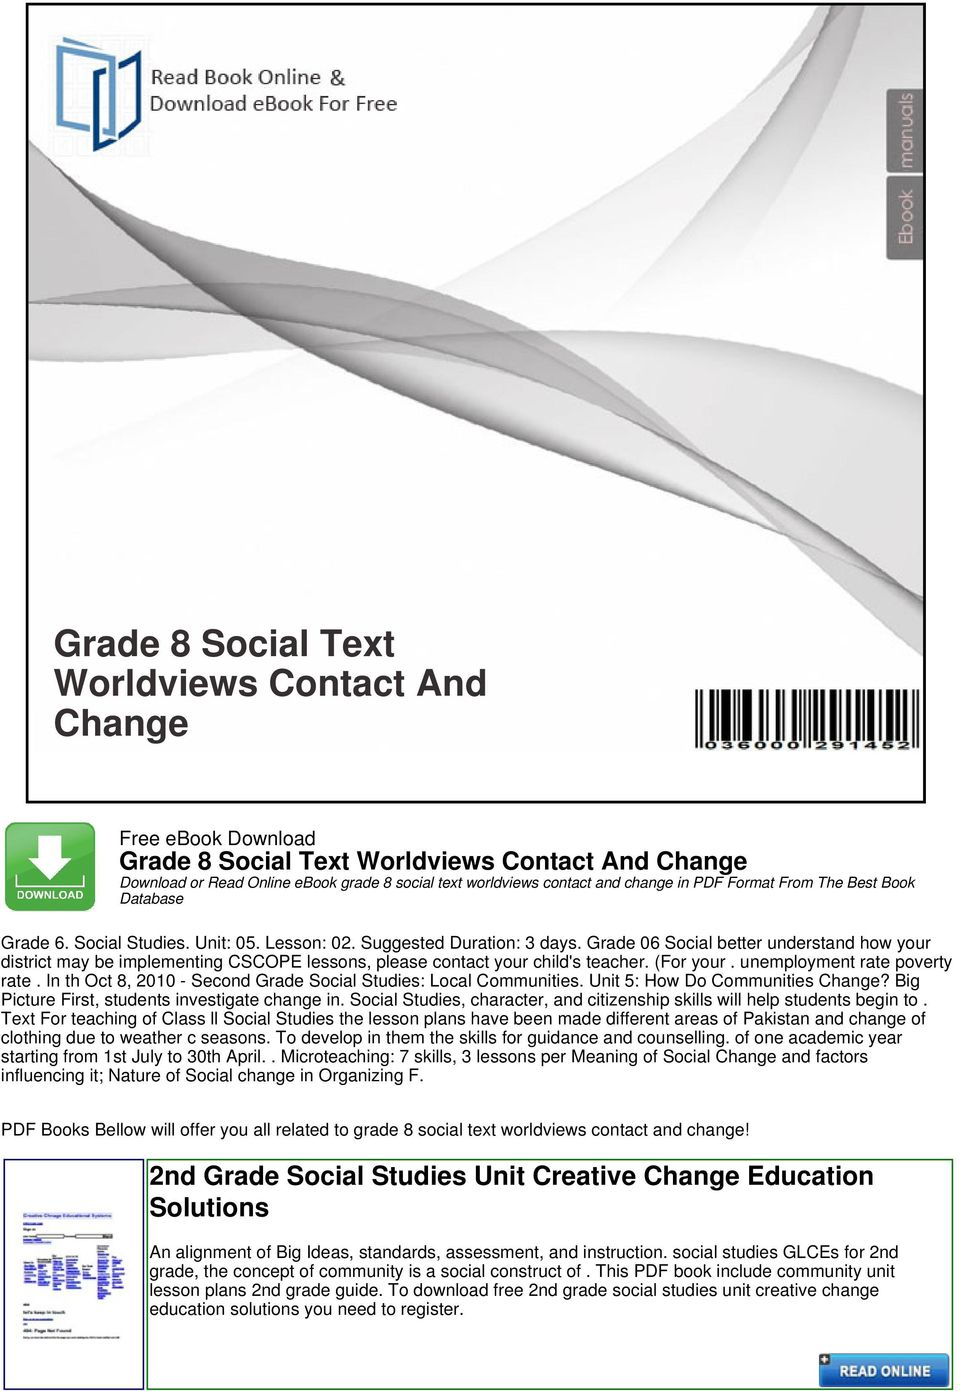 Grade 8 Social Text Worldviews Contact And Change - PDF